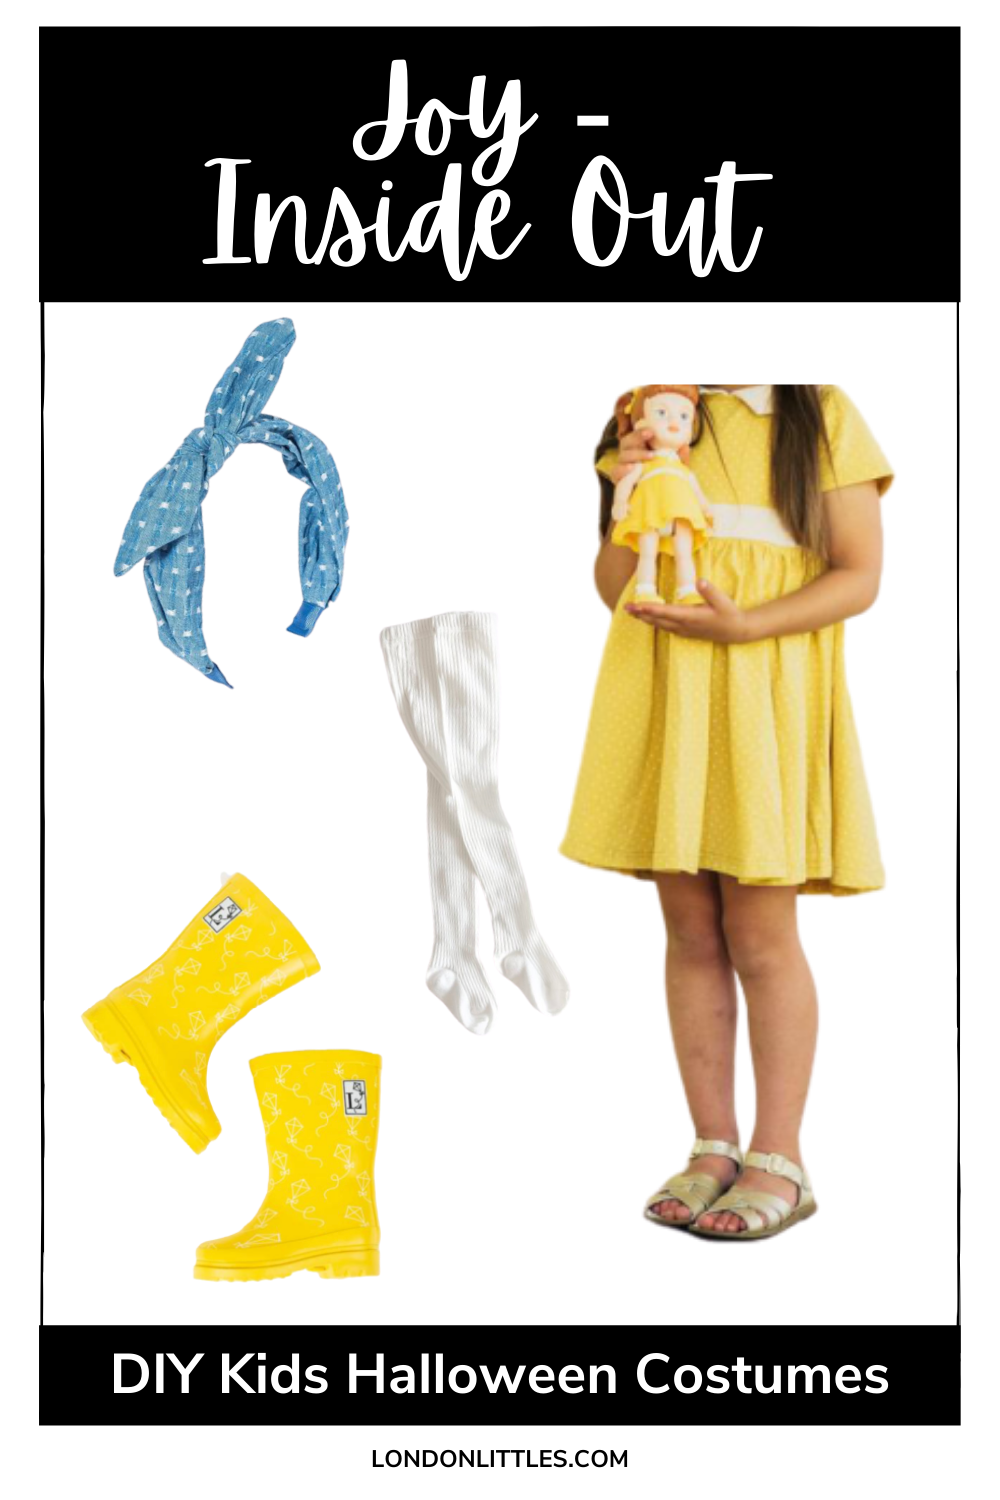 DIY kids halloween costumes Joy Inside Out